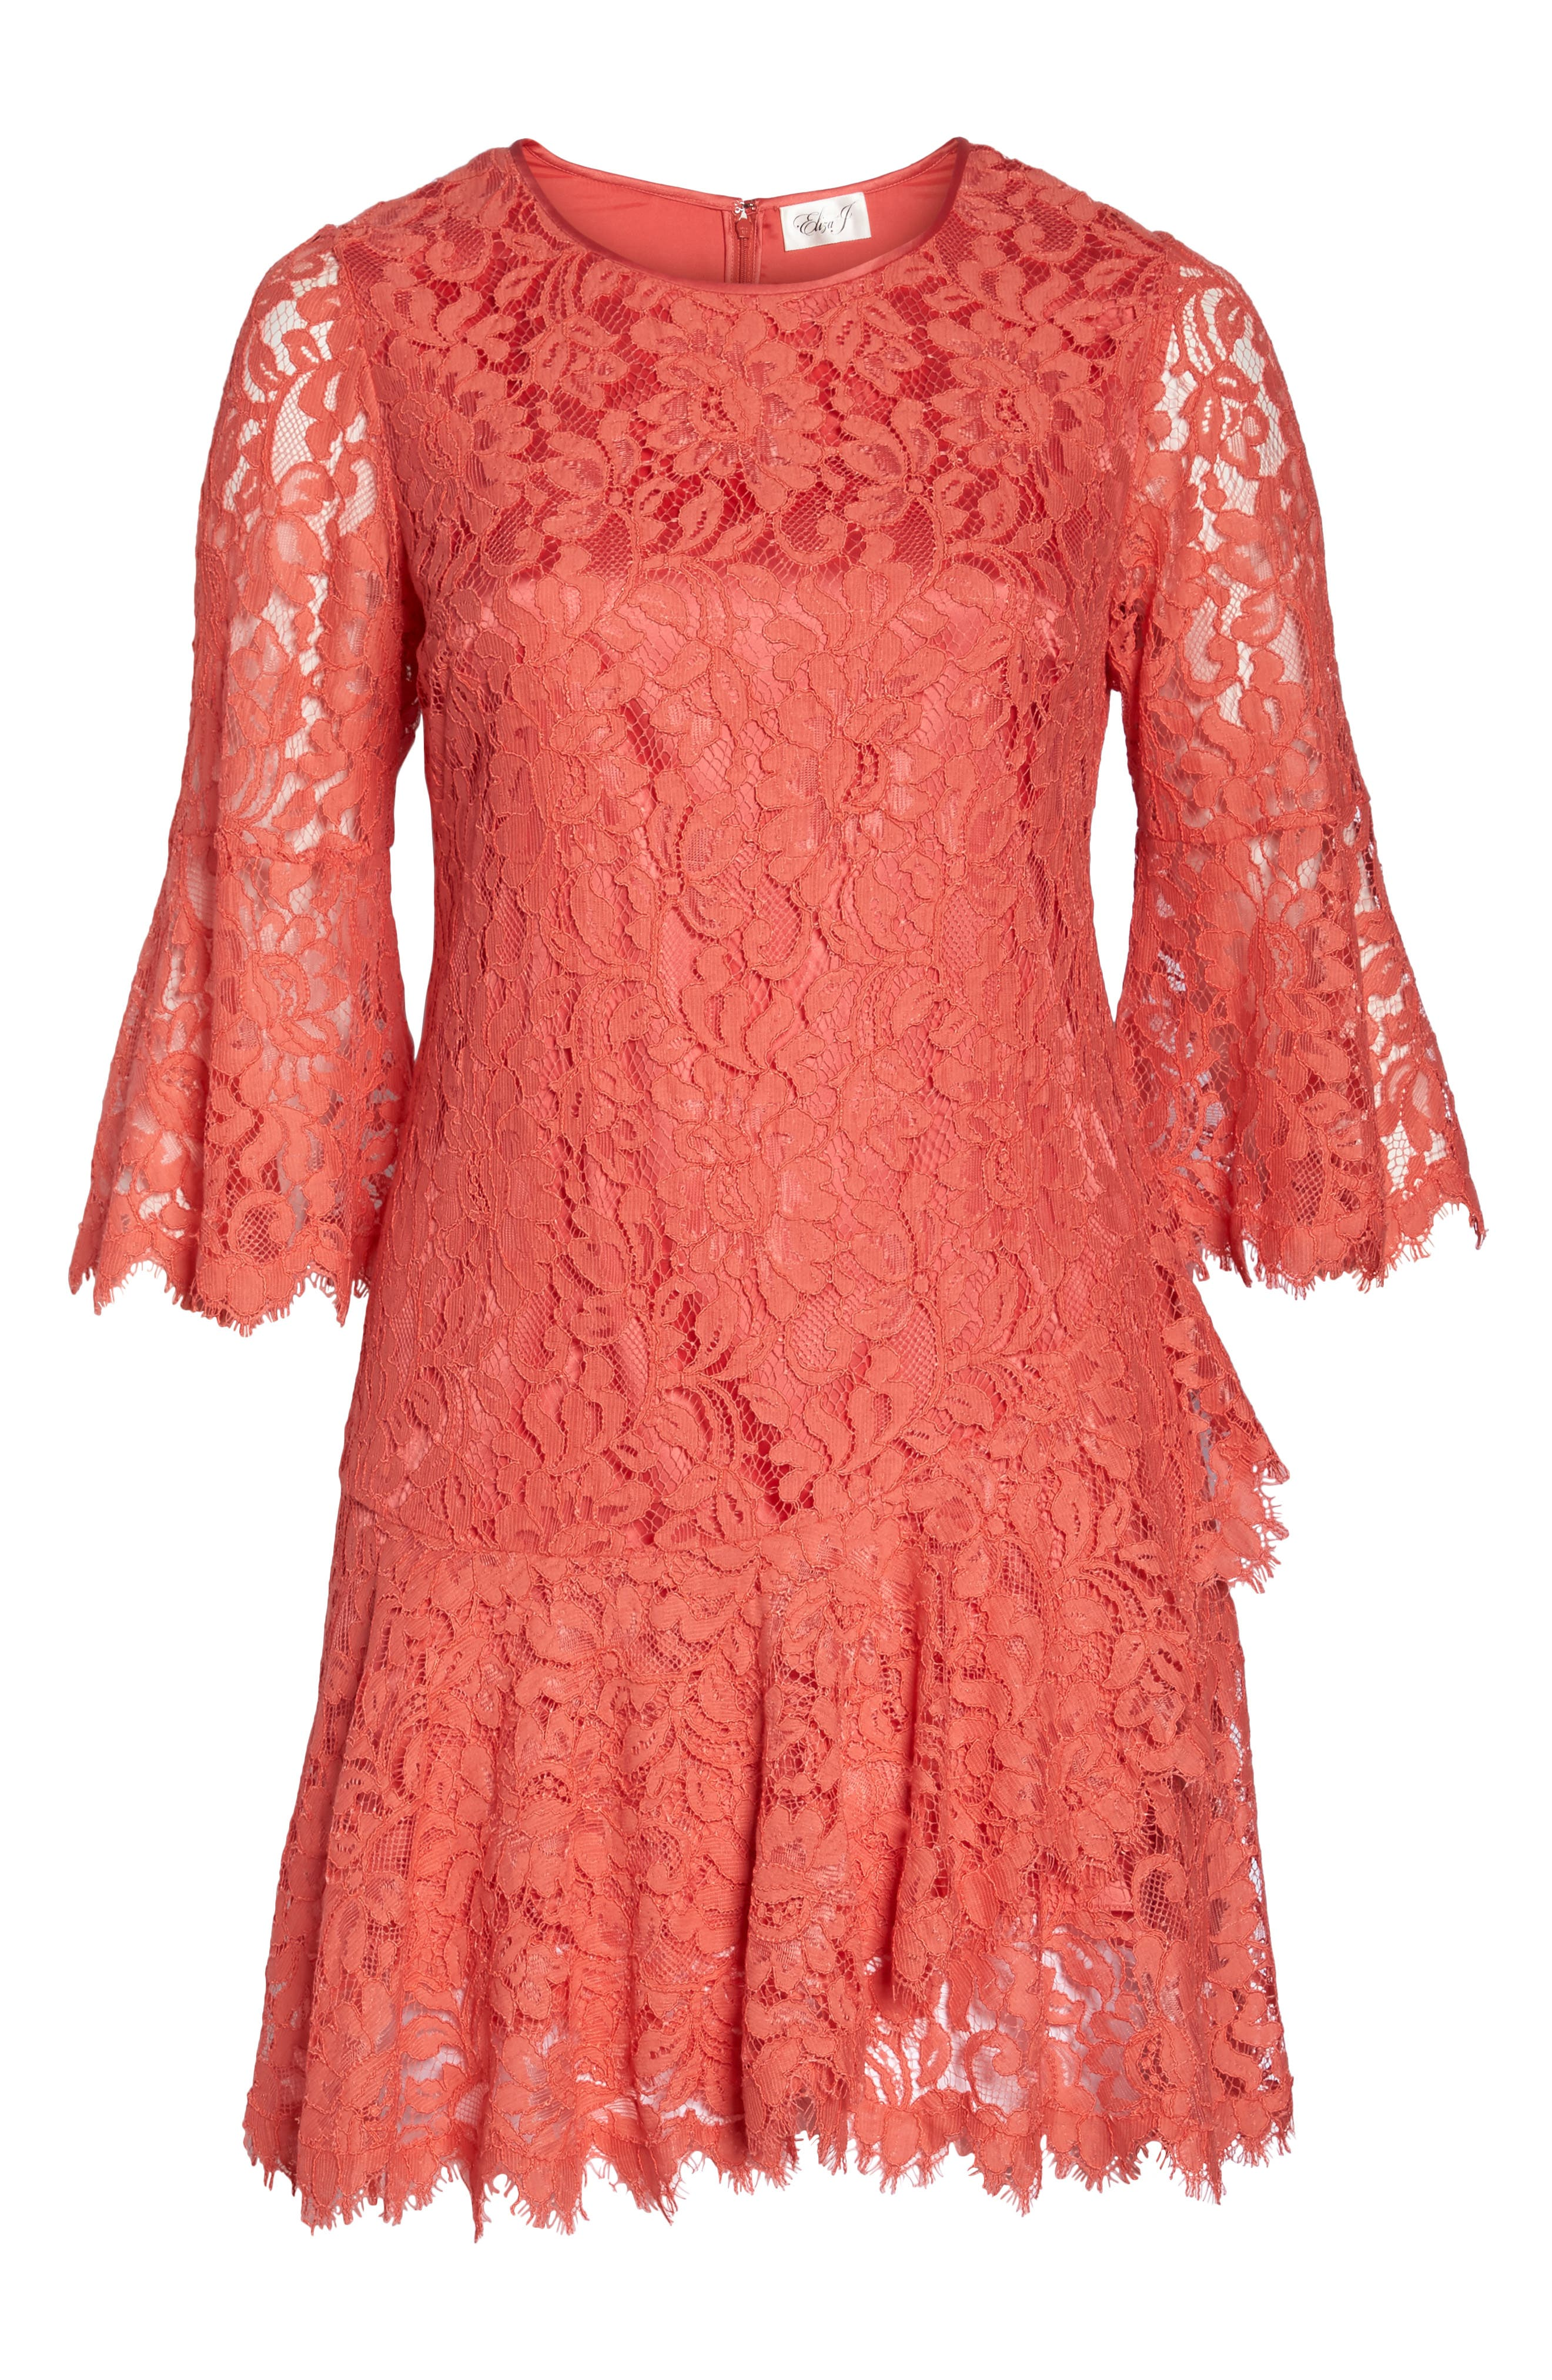 Bell Sleeve Lace Shift Dress,                             Alternate thumbnail 6, color,                             651